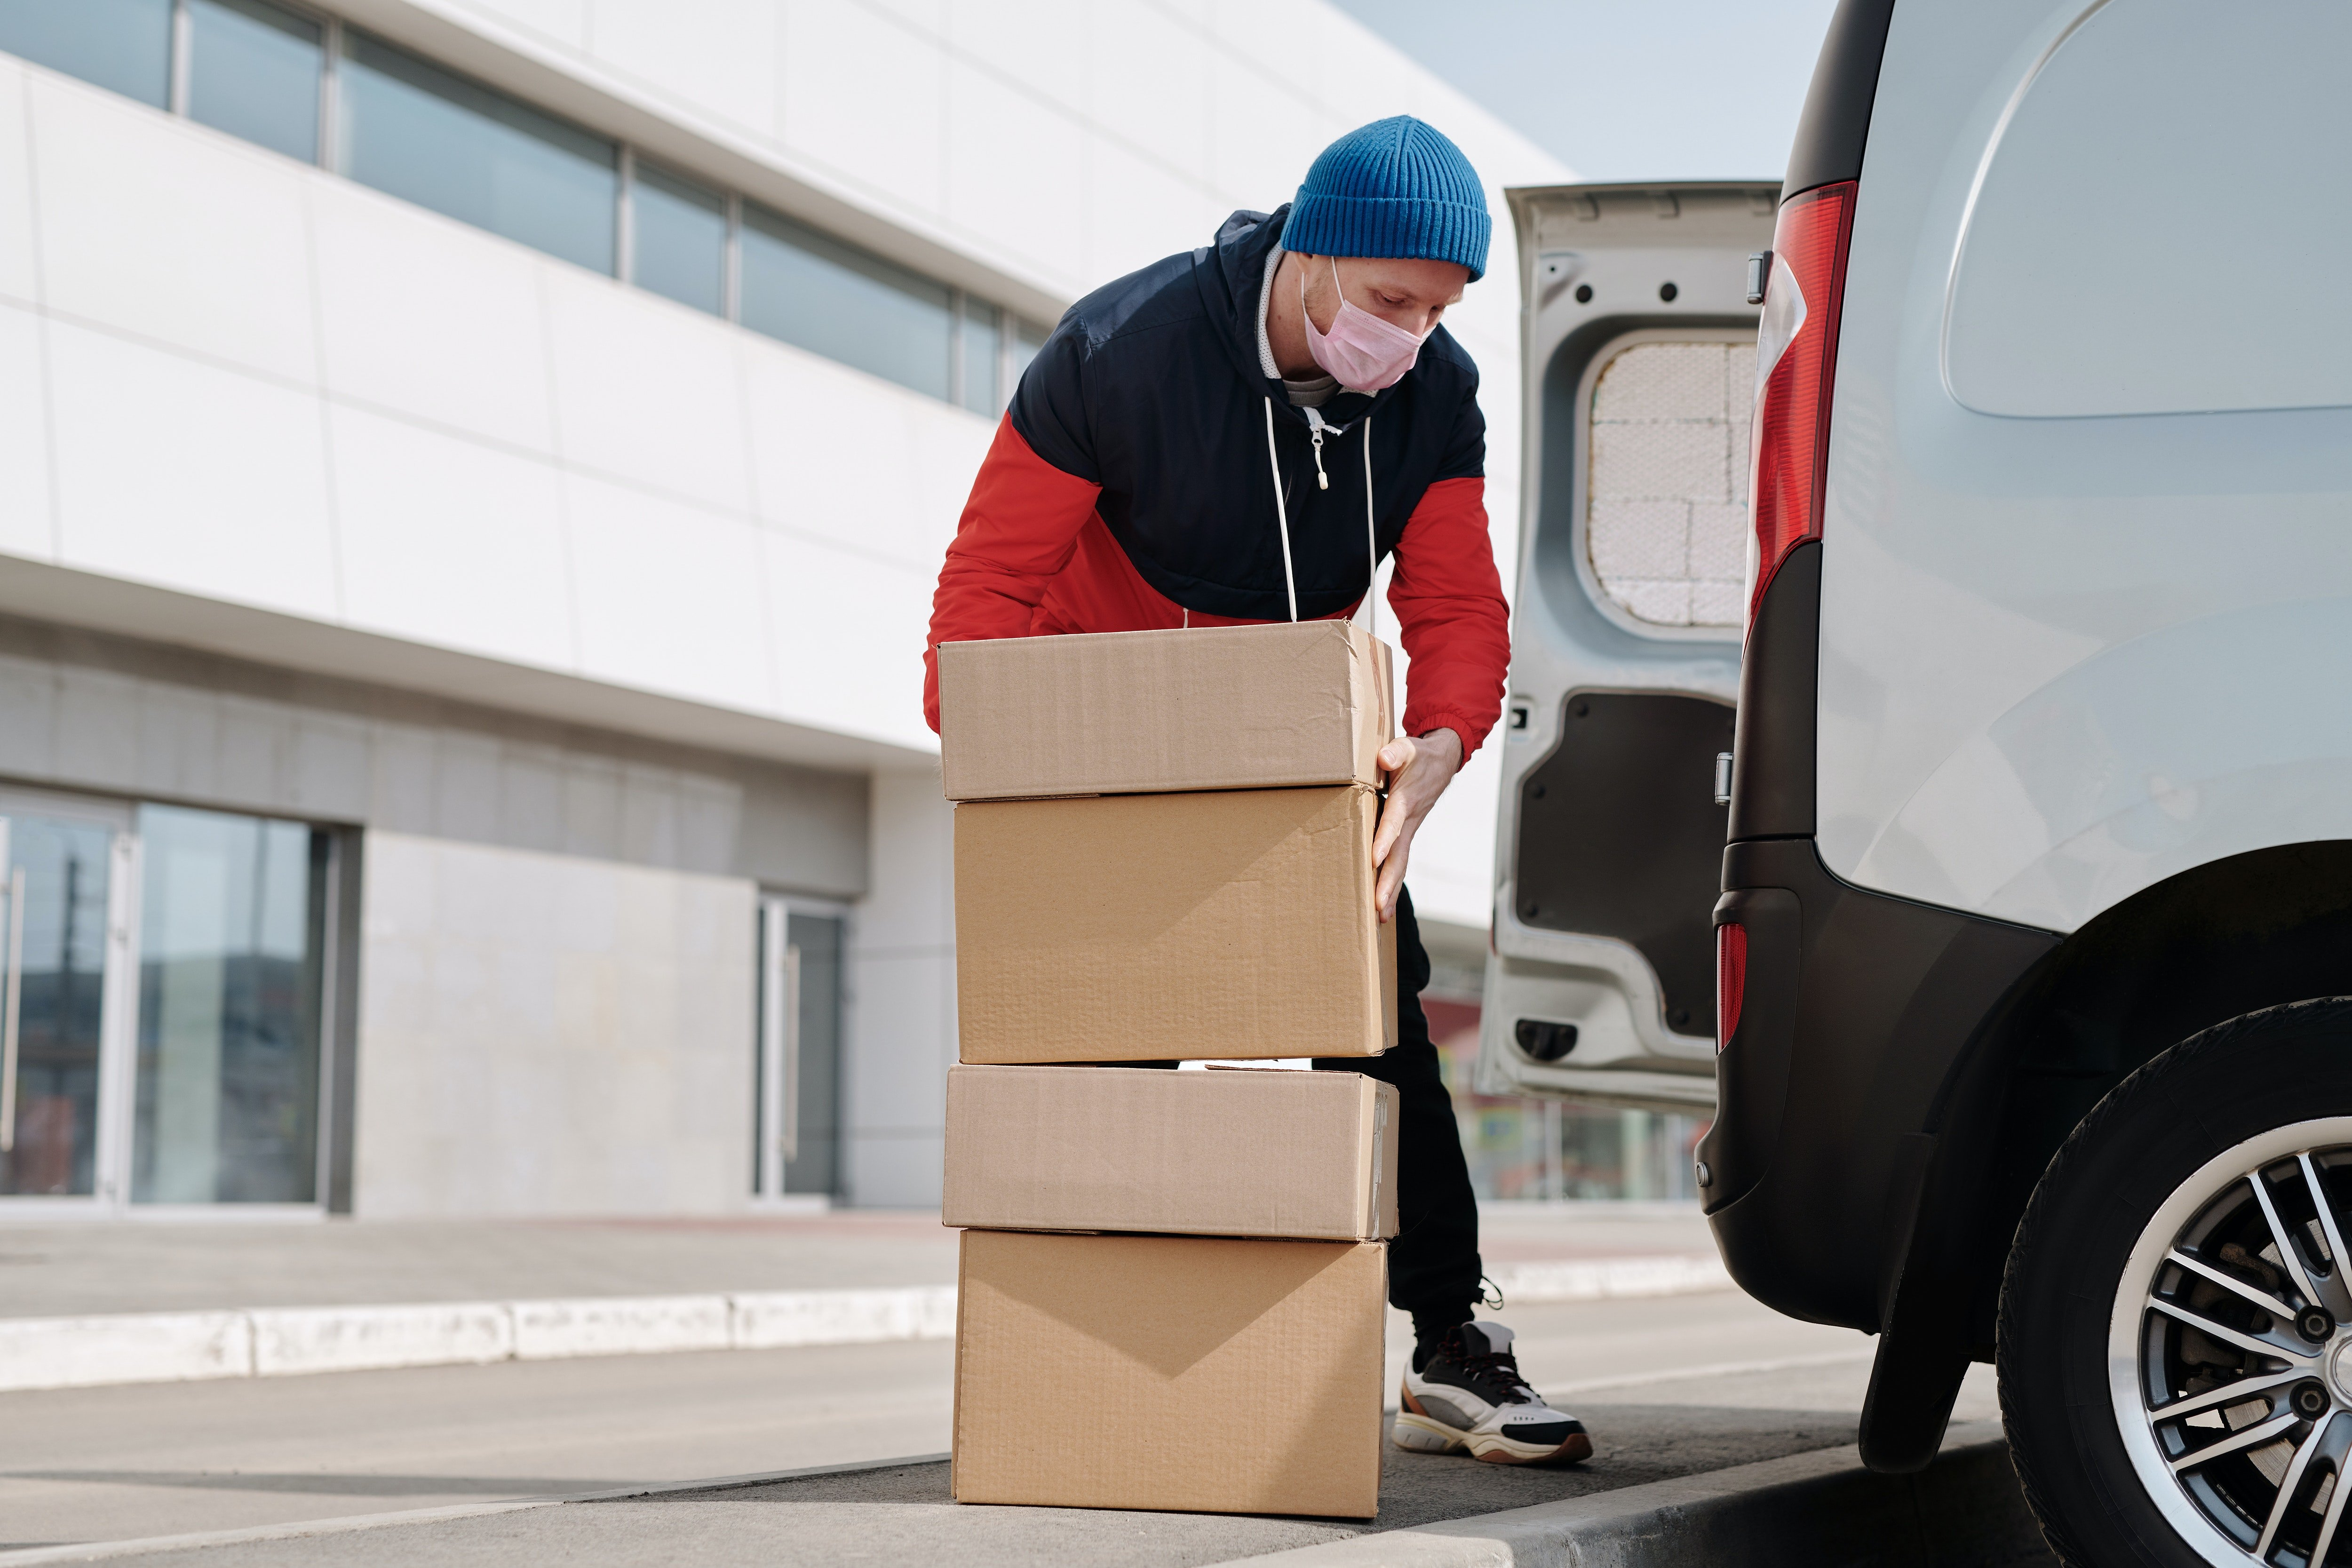 A delivery man with delivery boxes   Photo: Pexels